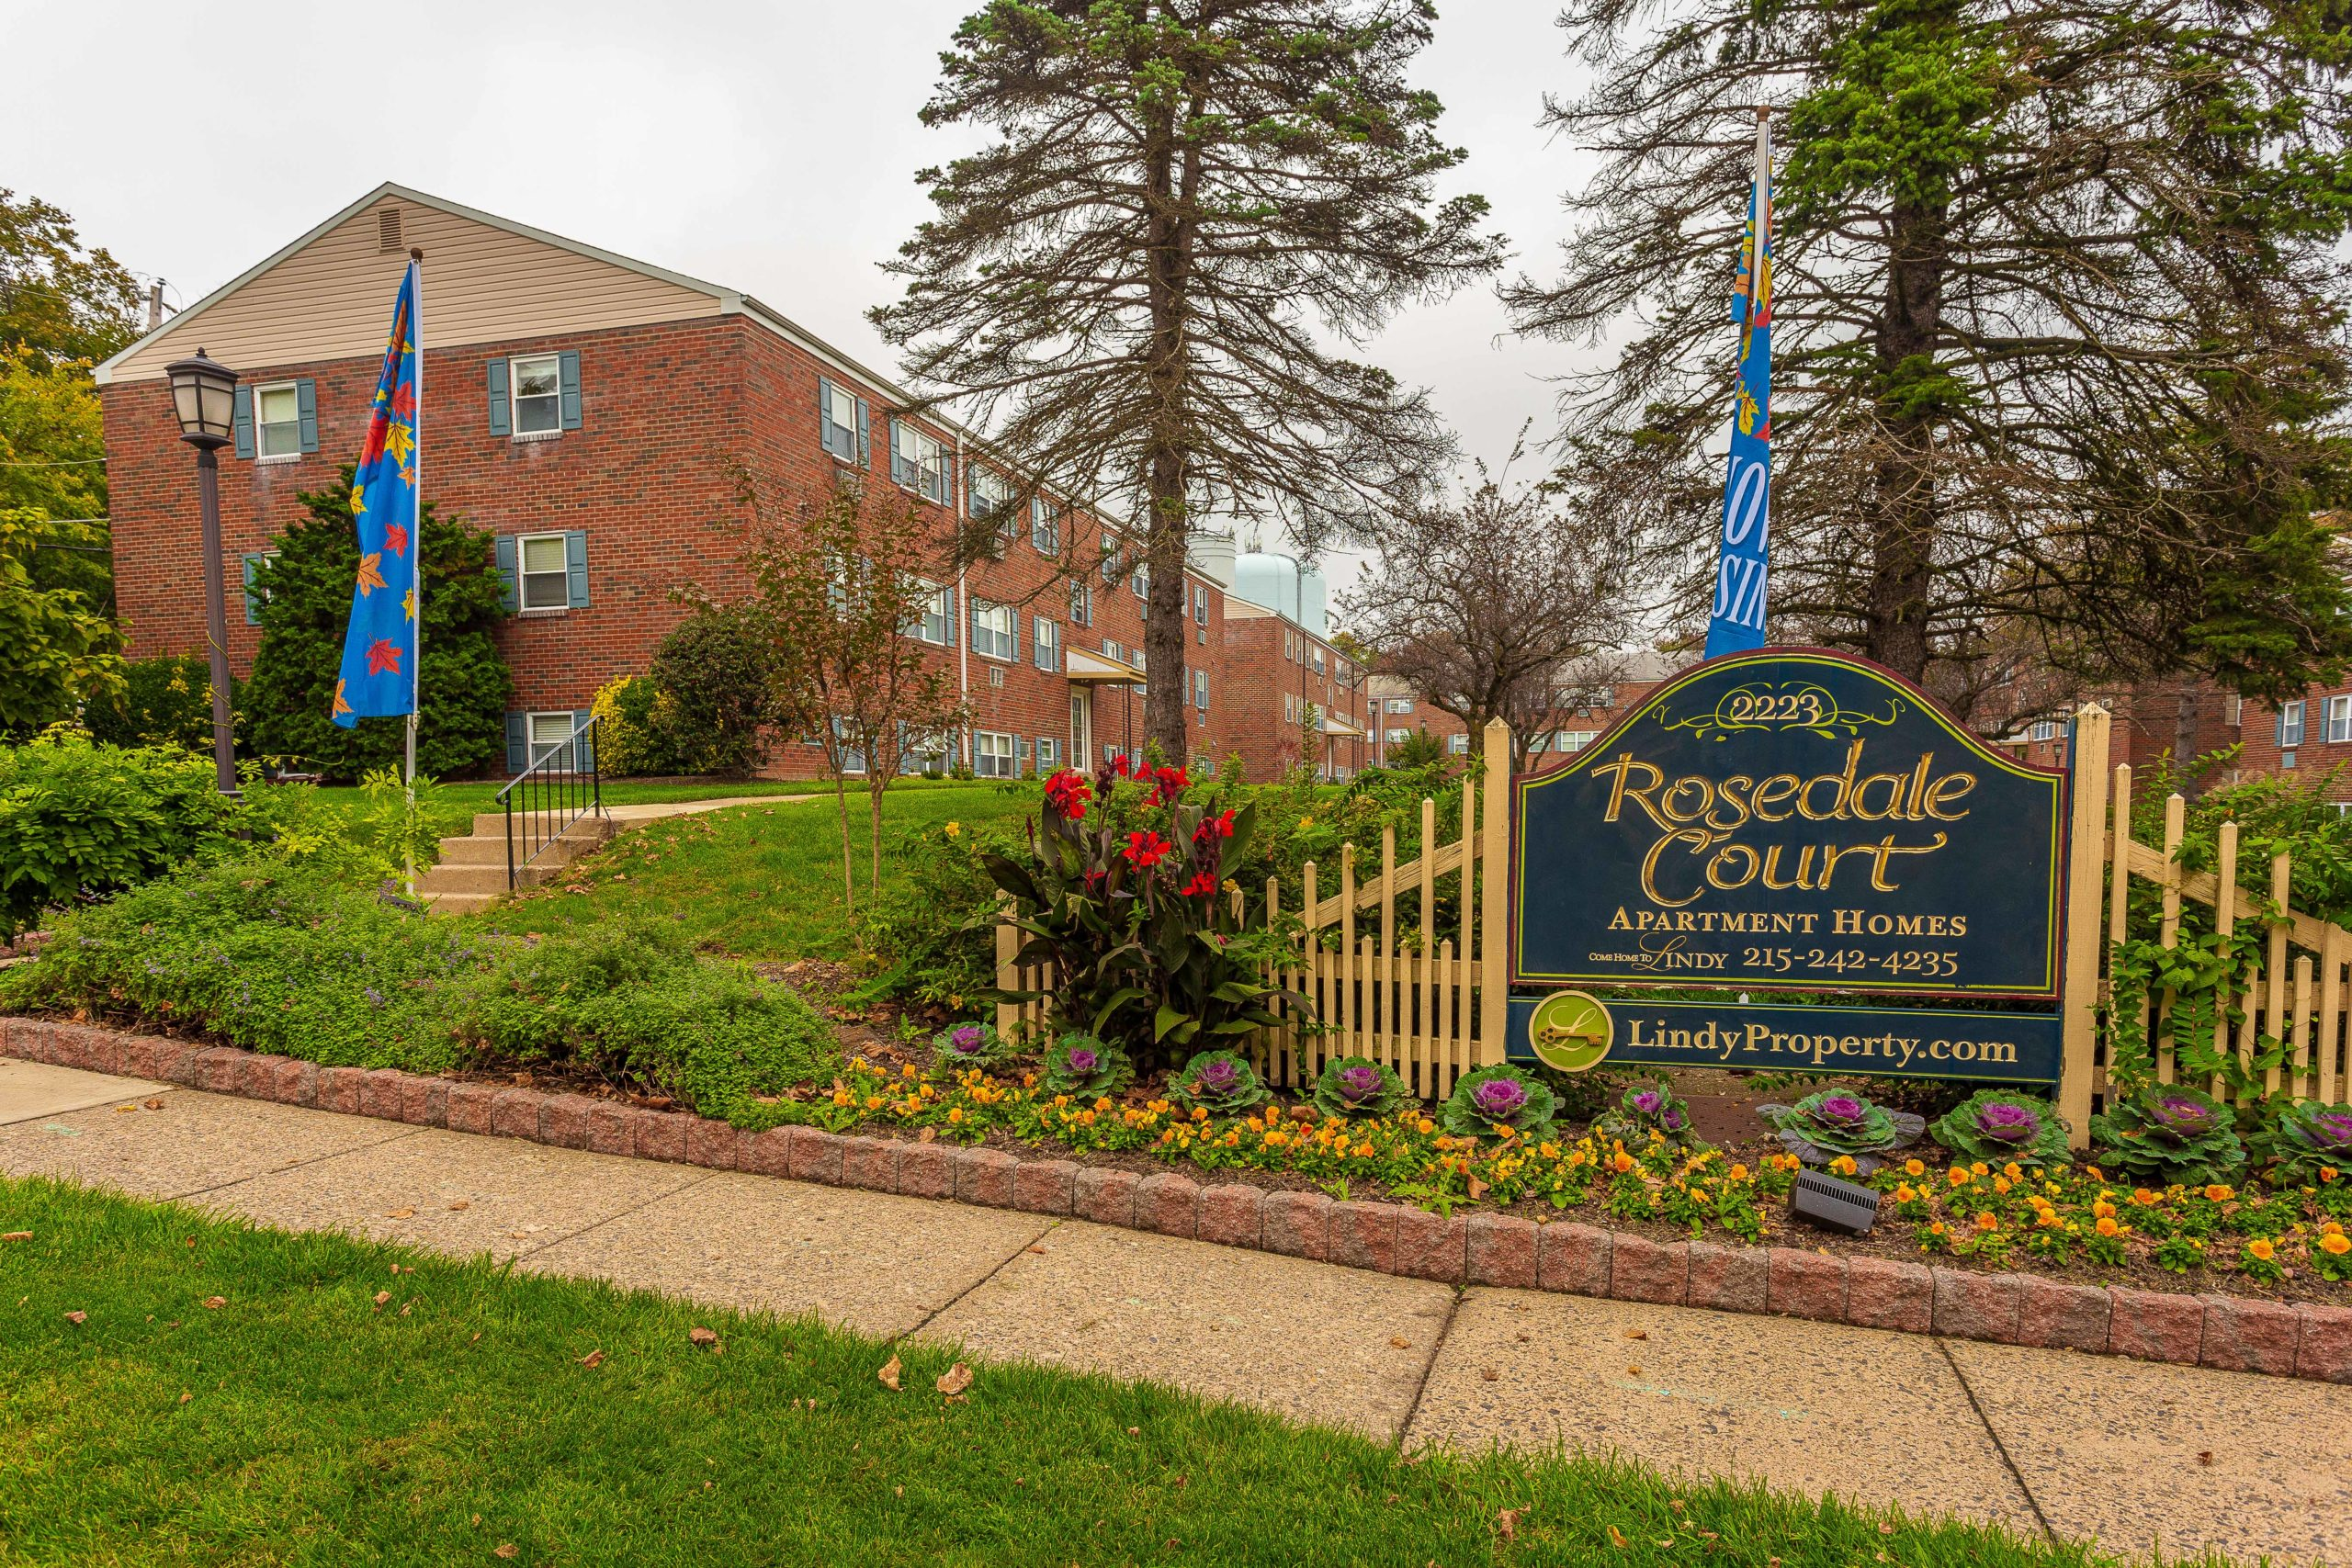 Entrance sign to Rosedale Court apartments for rent in Abington, PA